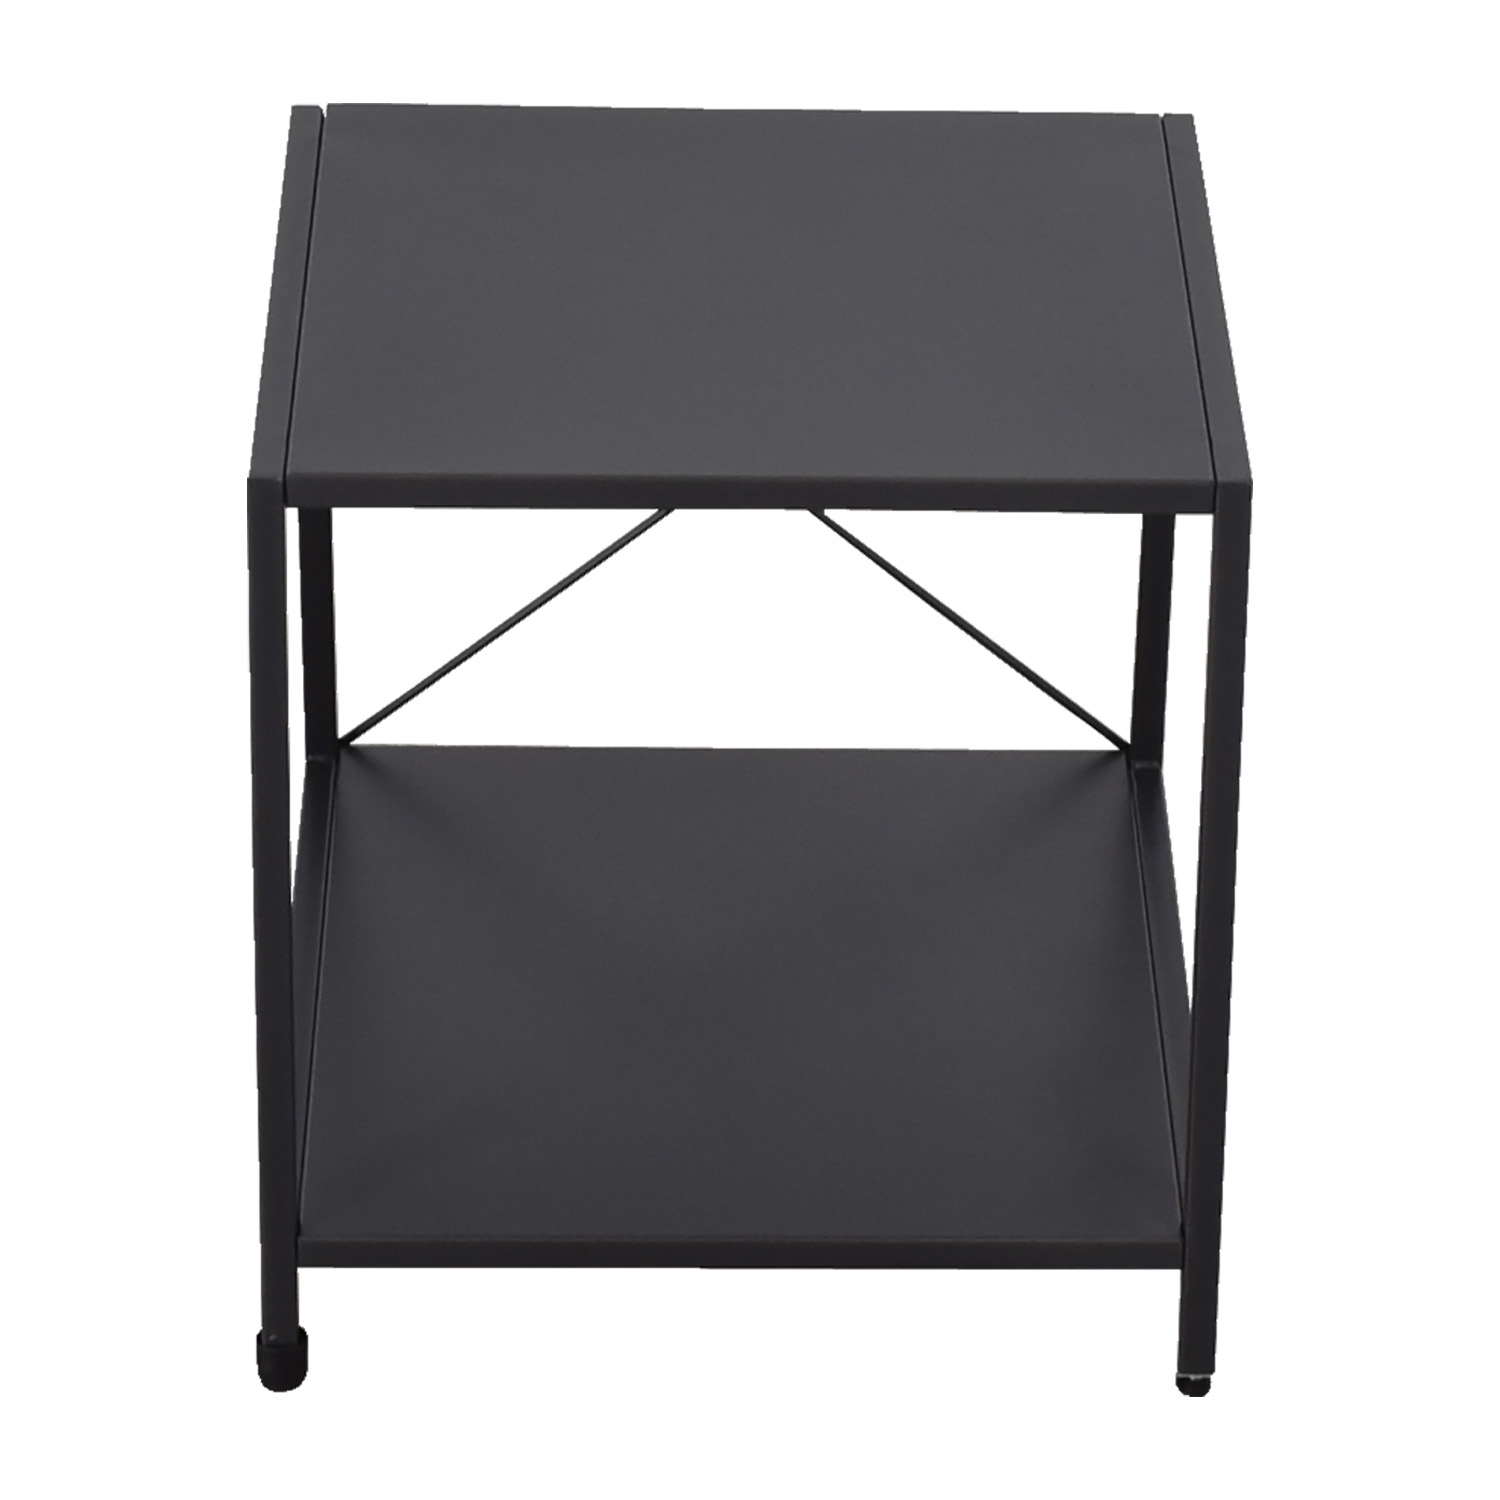 CB2 CB2 Charcoal Nightstand nj